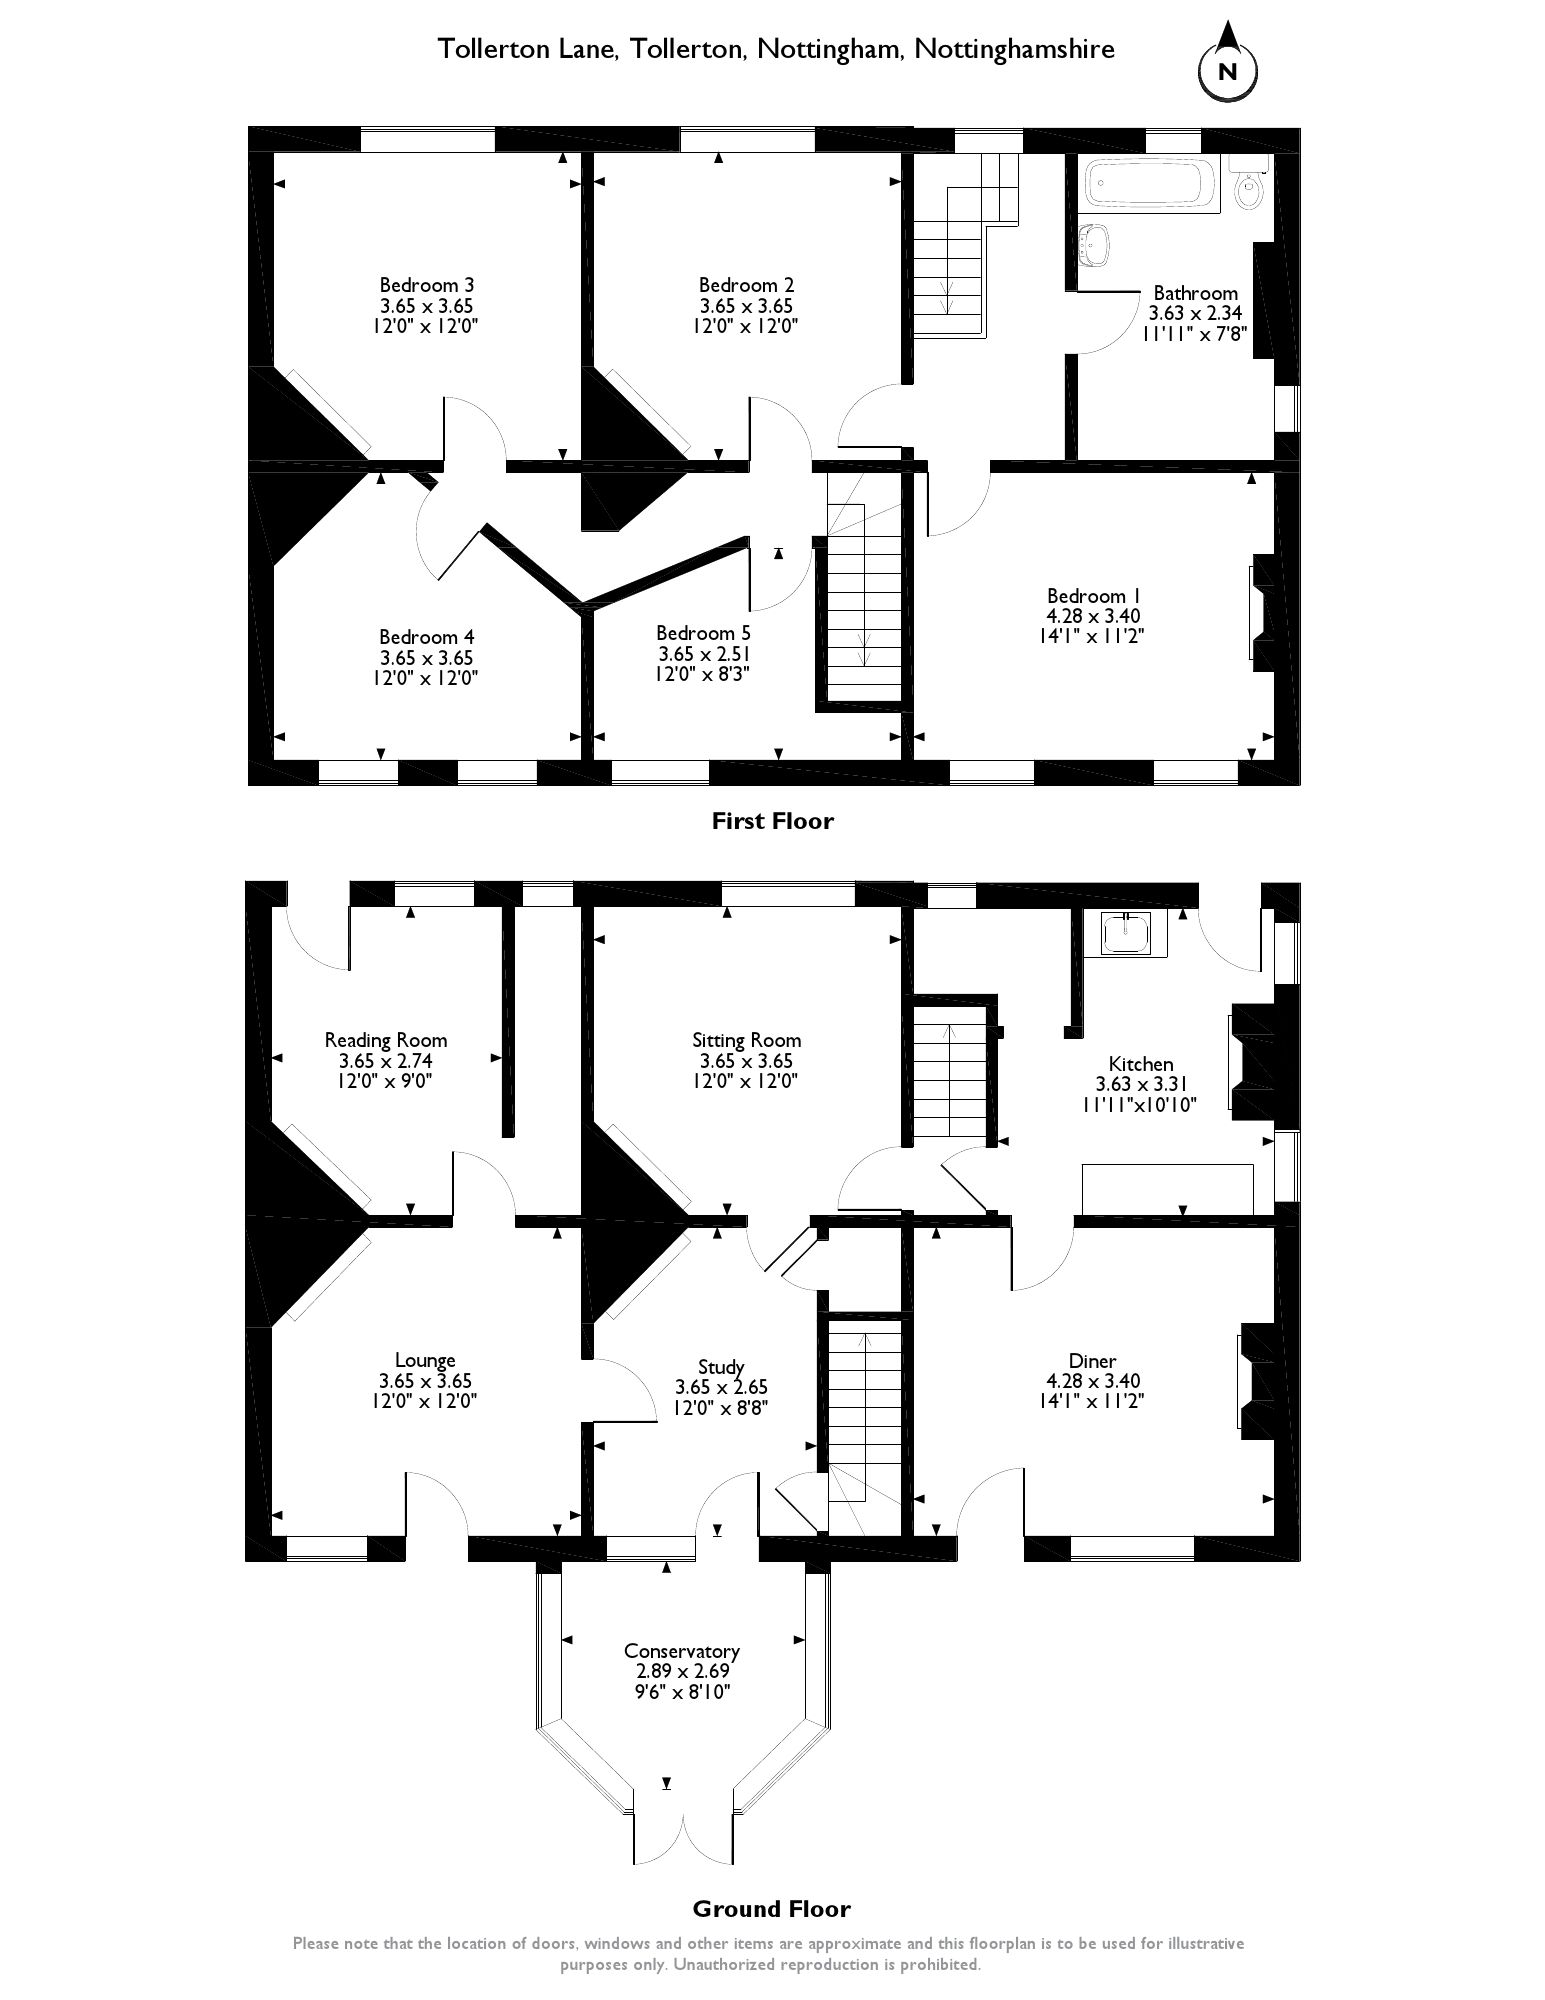 Tollerton Lane, Nottingham, NG12 floor plan